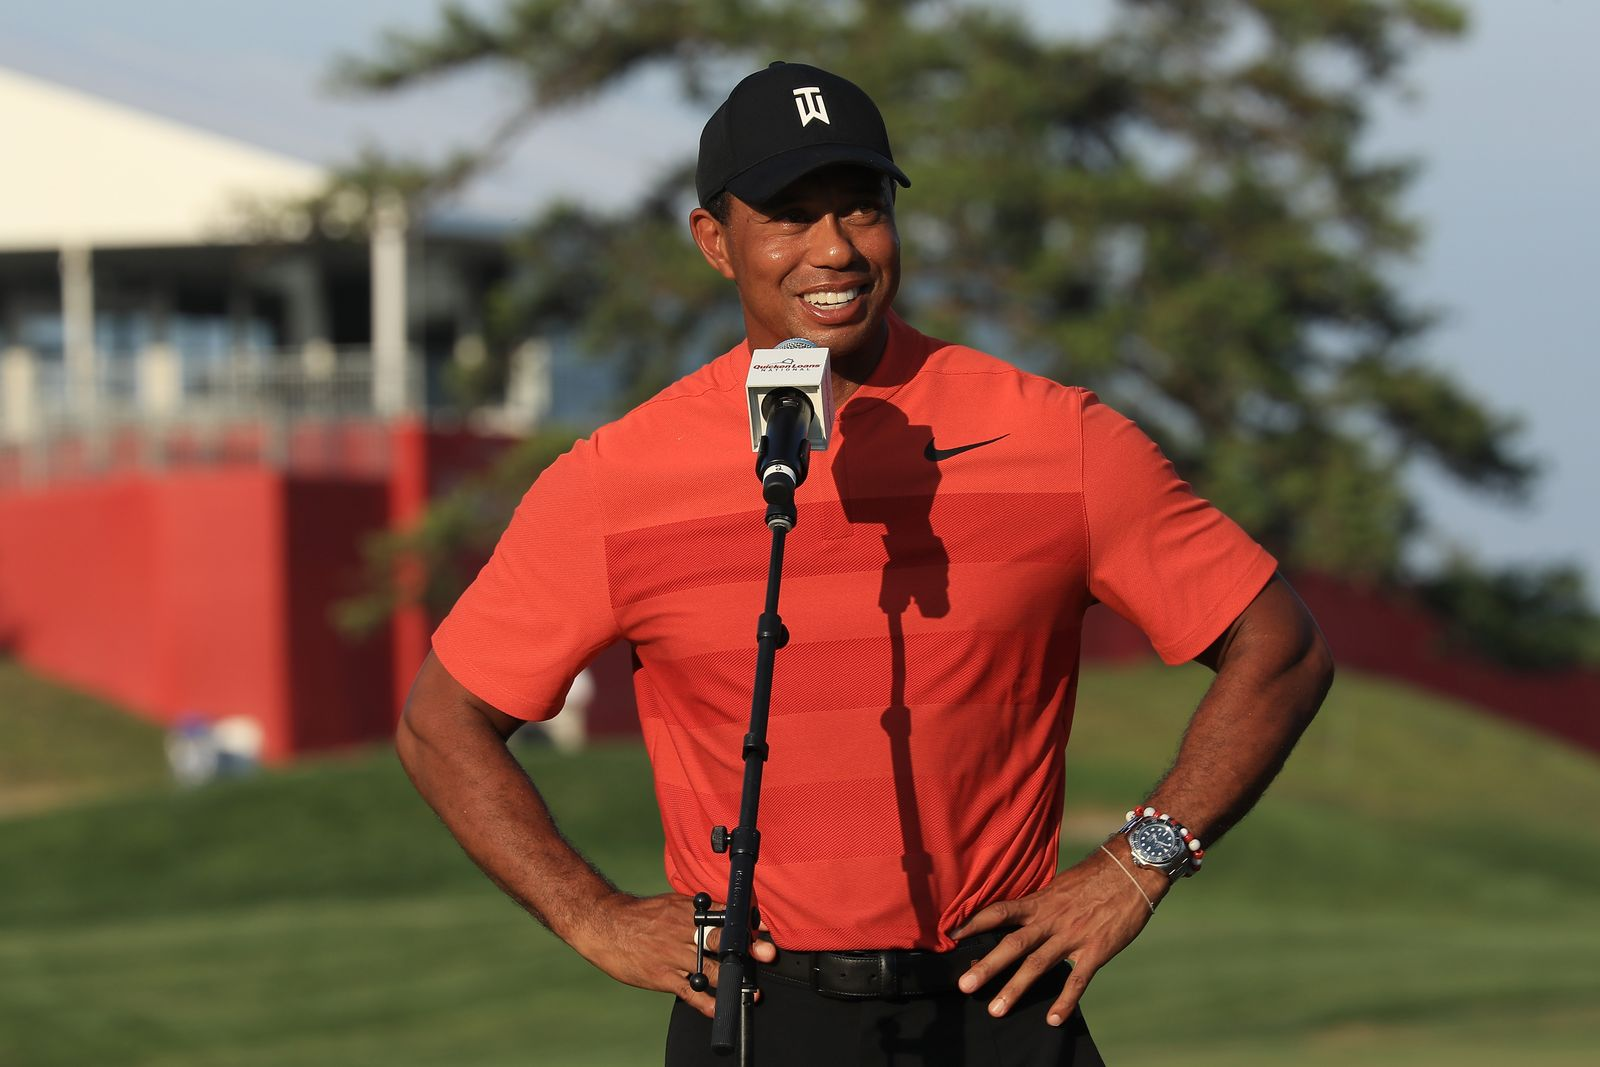 Top golf player Tiger Woods giving a speech.   Photo: Getty Images